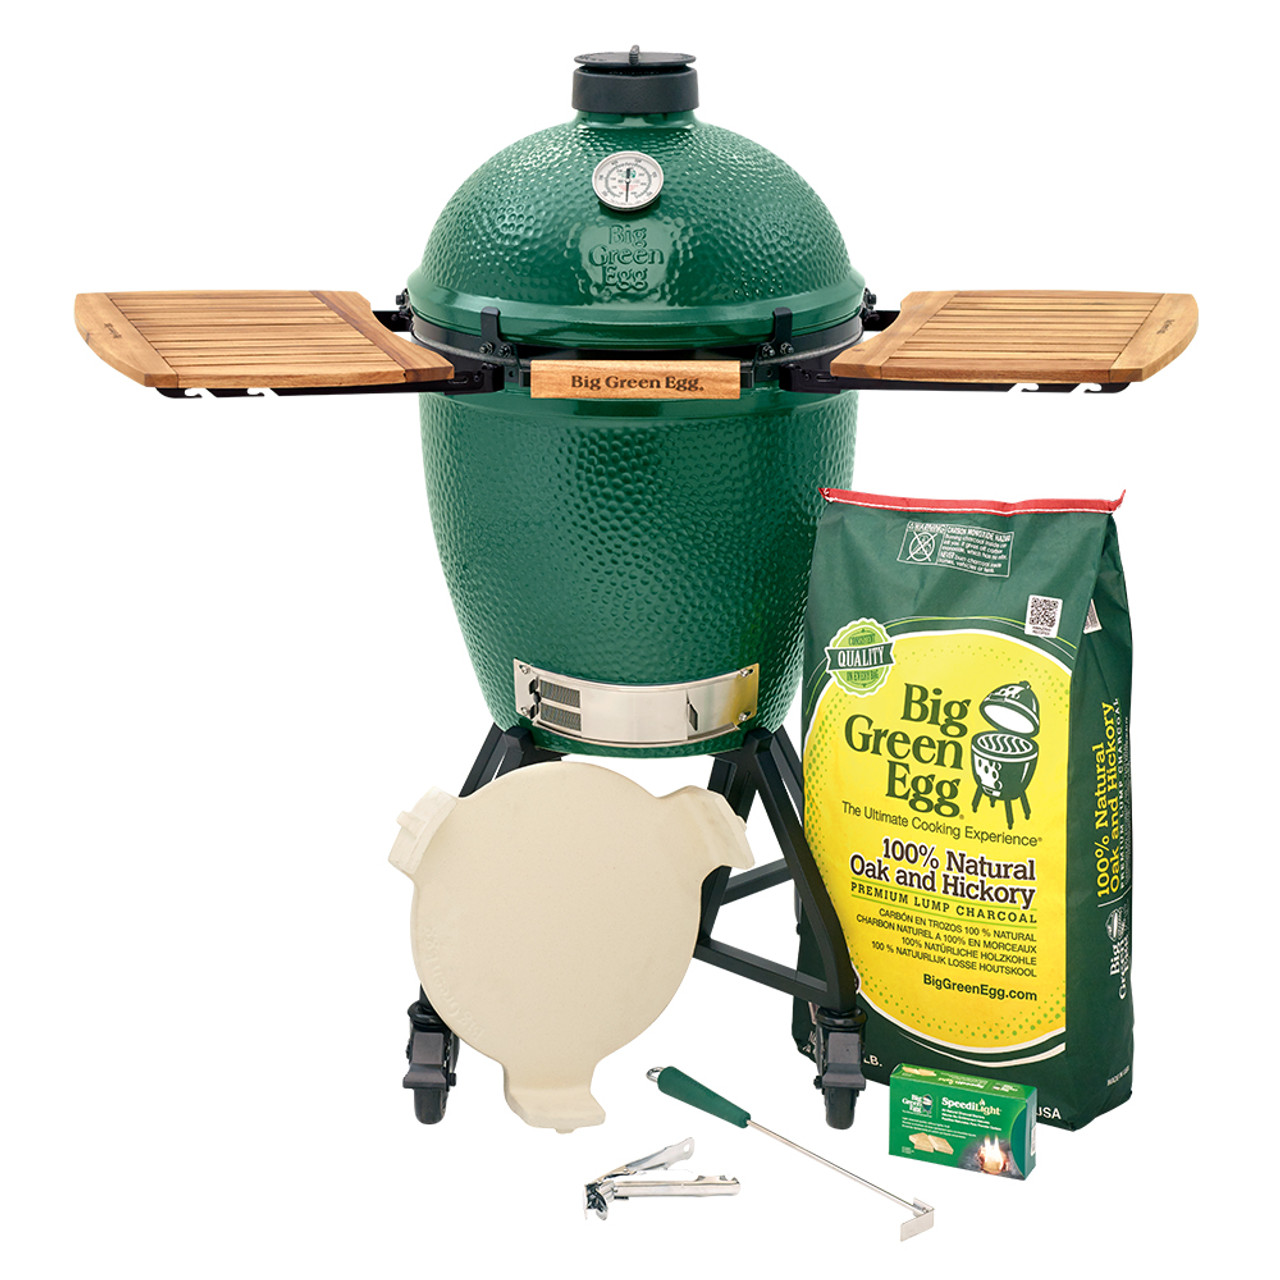 Large size Big Green EGG starter package: Big Green Egg, nest+handler, acacia mates, lump charcoal, charcoal starters, ash tool, grid gripper, large convEGGtor